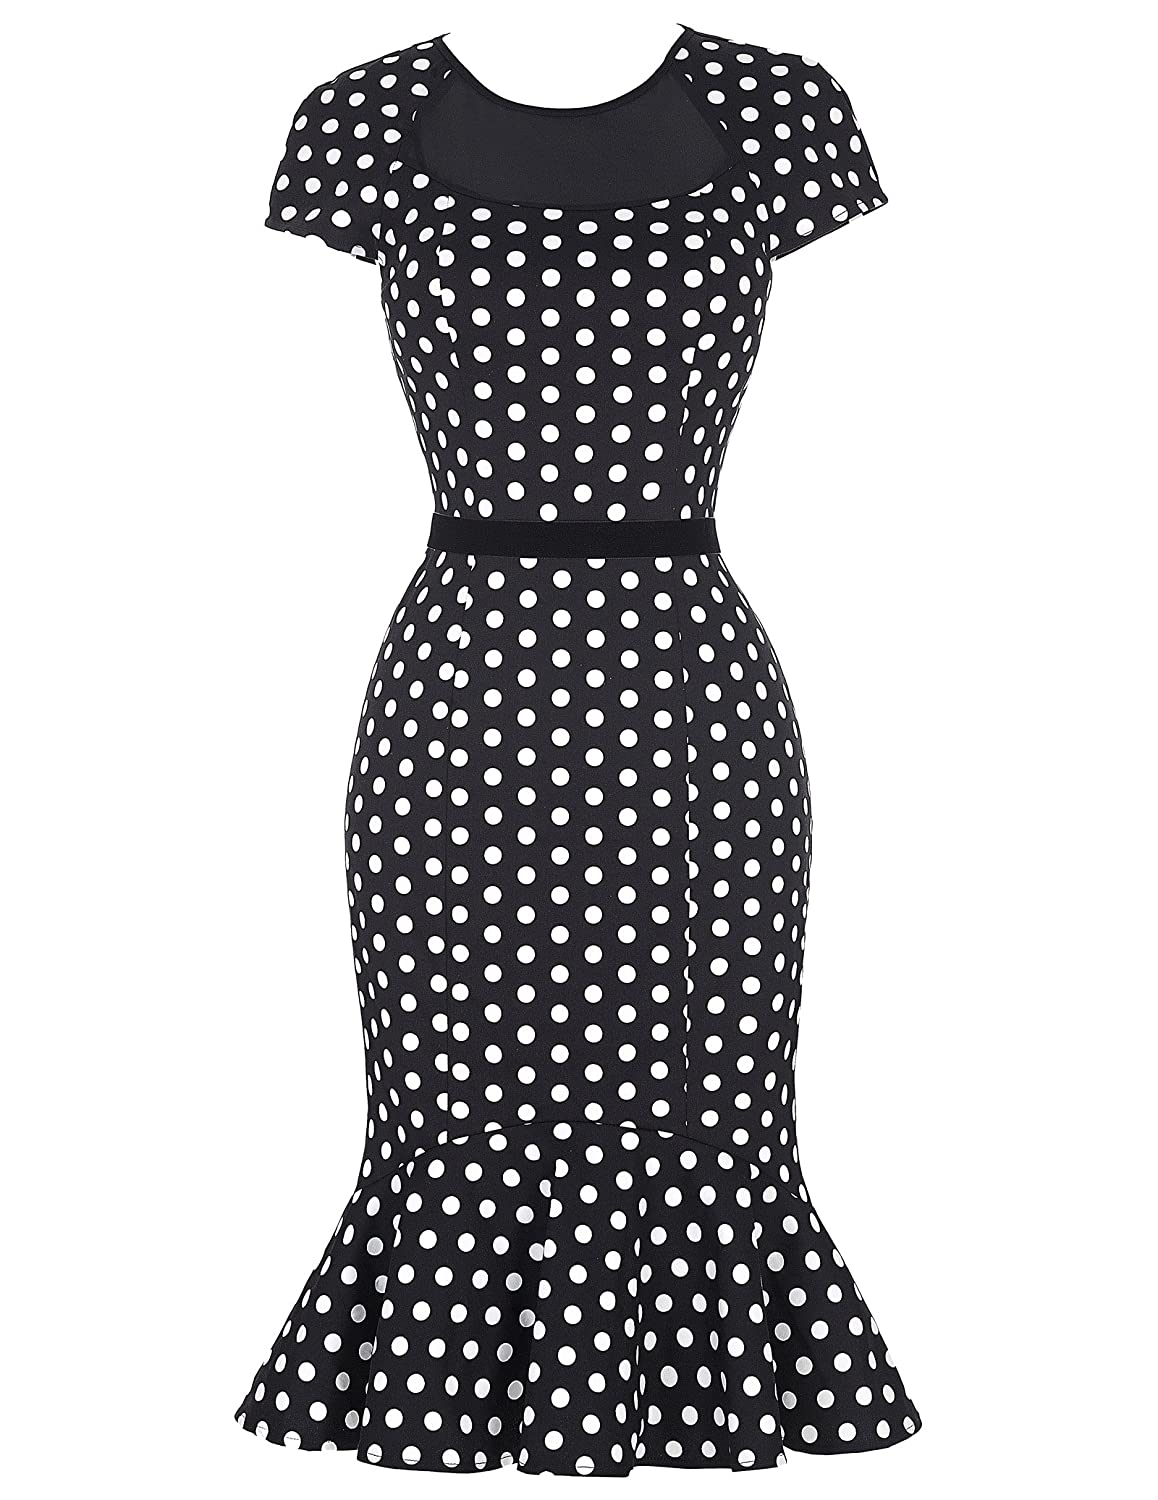 1950s Polka Dot Dresses Belle Poque Womens Floral Slim Fishtail Bodycon Dresses $16.99 AT vintagedancer.com